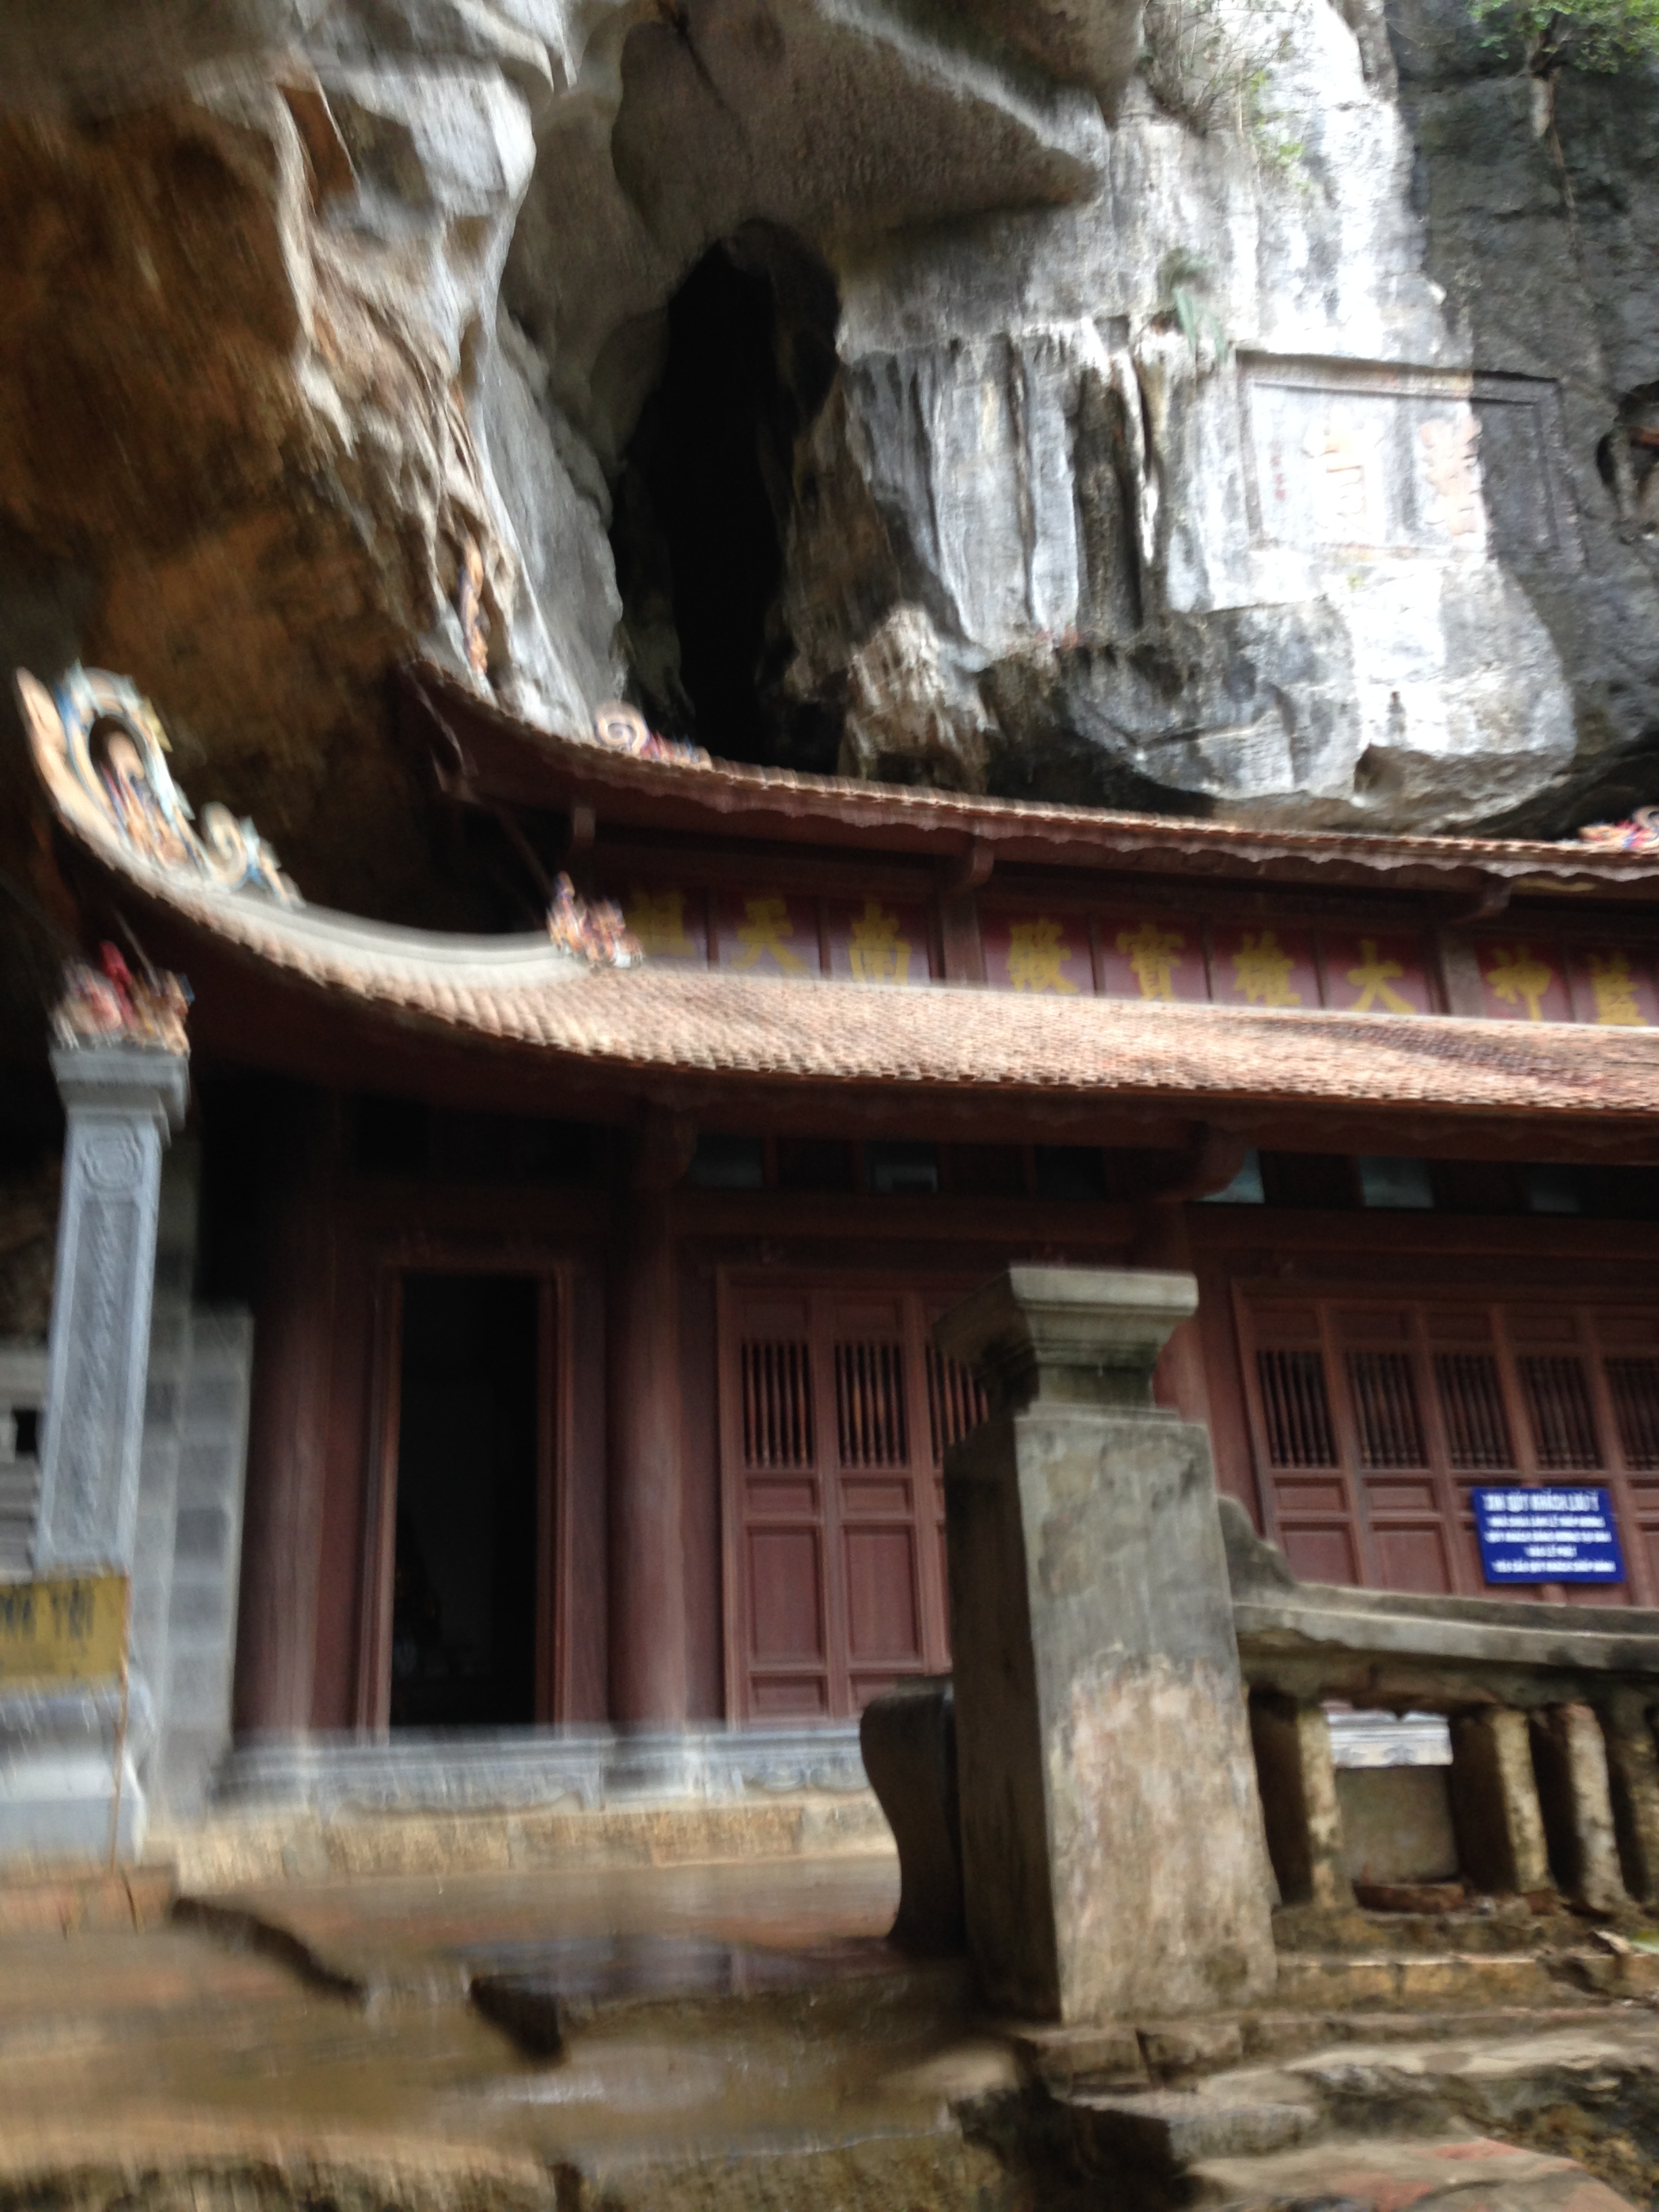 to a beautiful temple in a cave